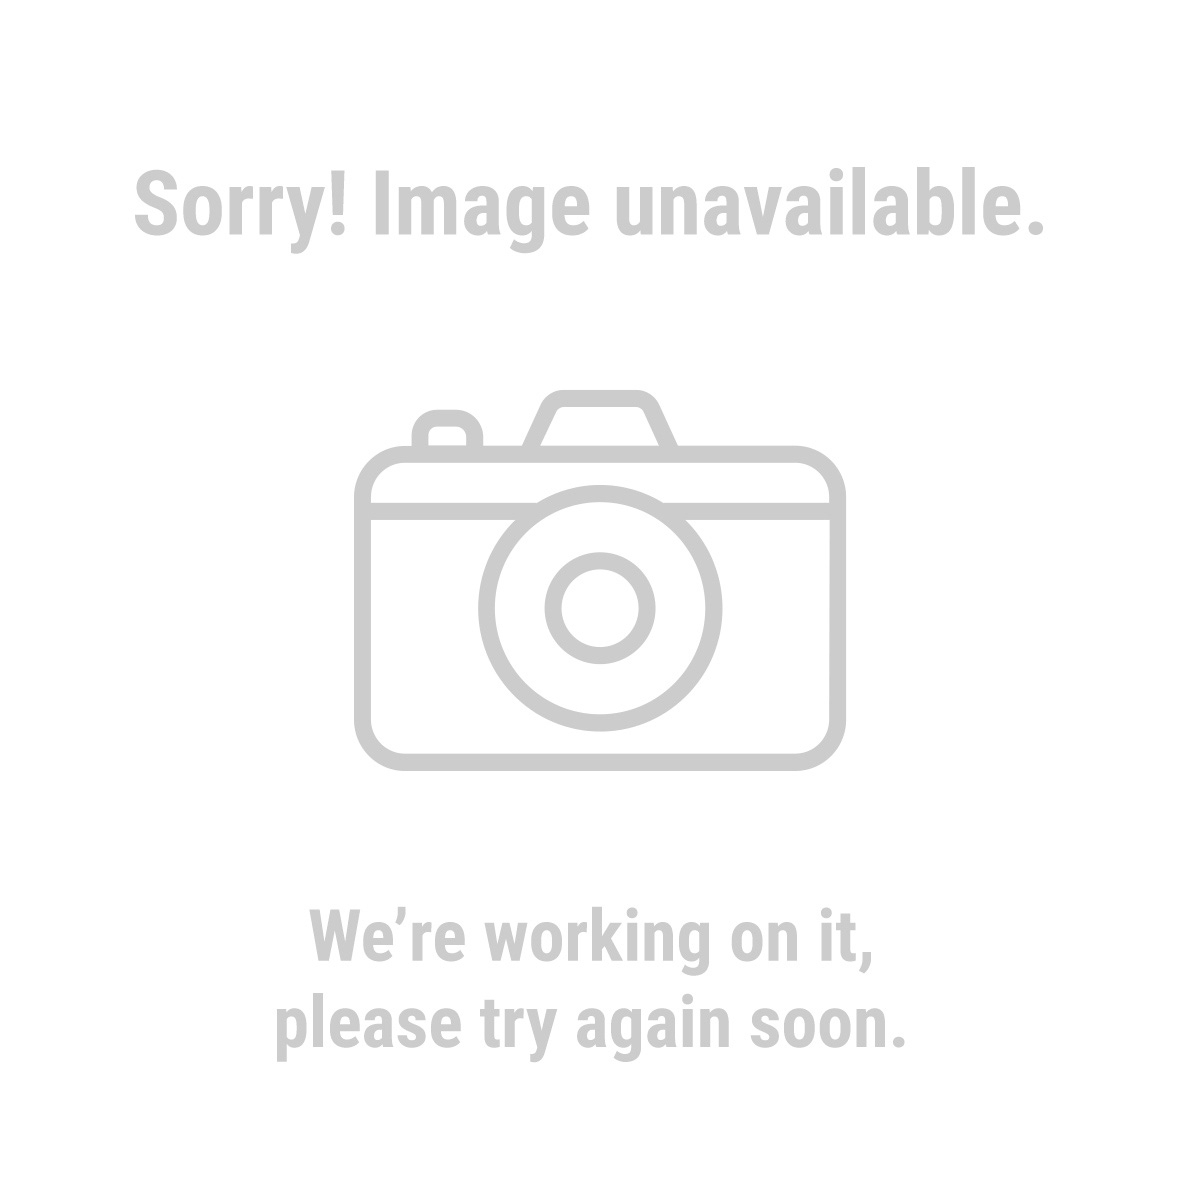 37081 Easy Sorter Funnel Tray